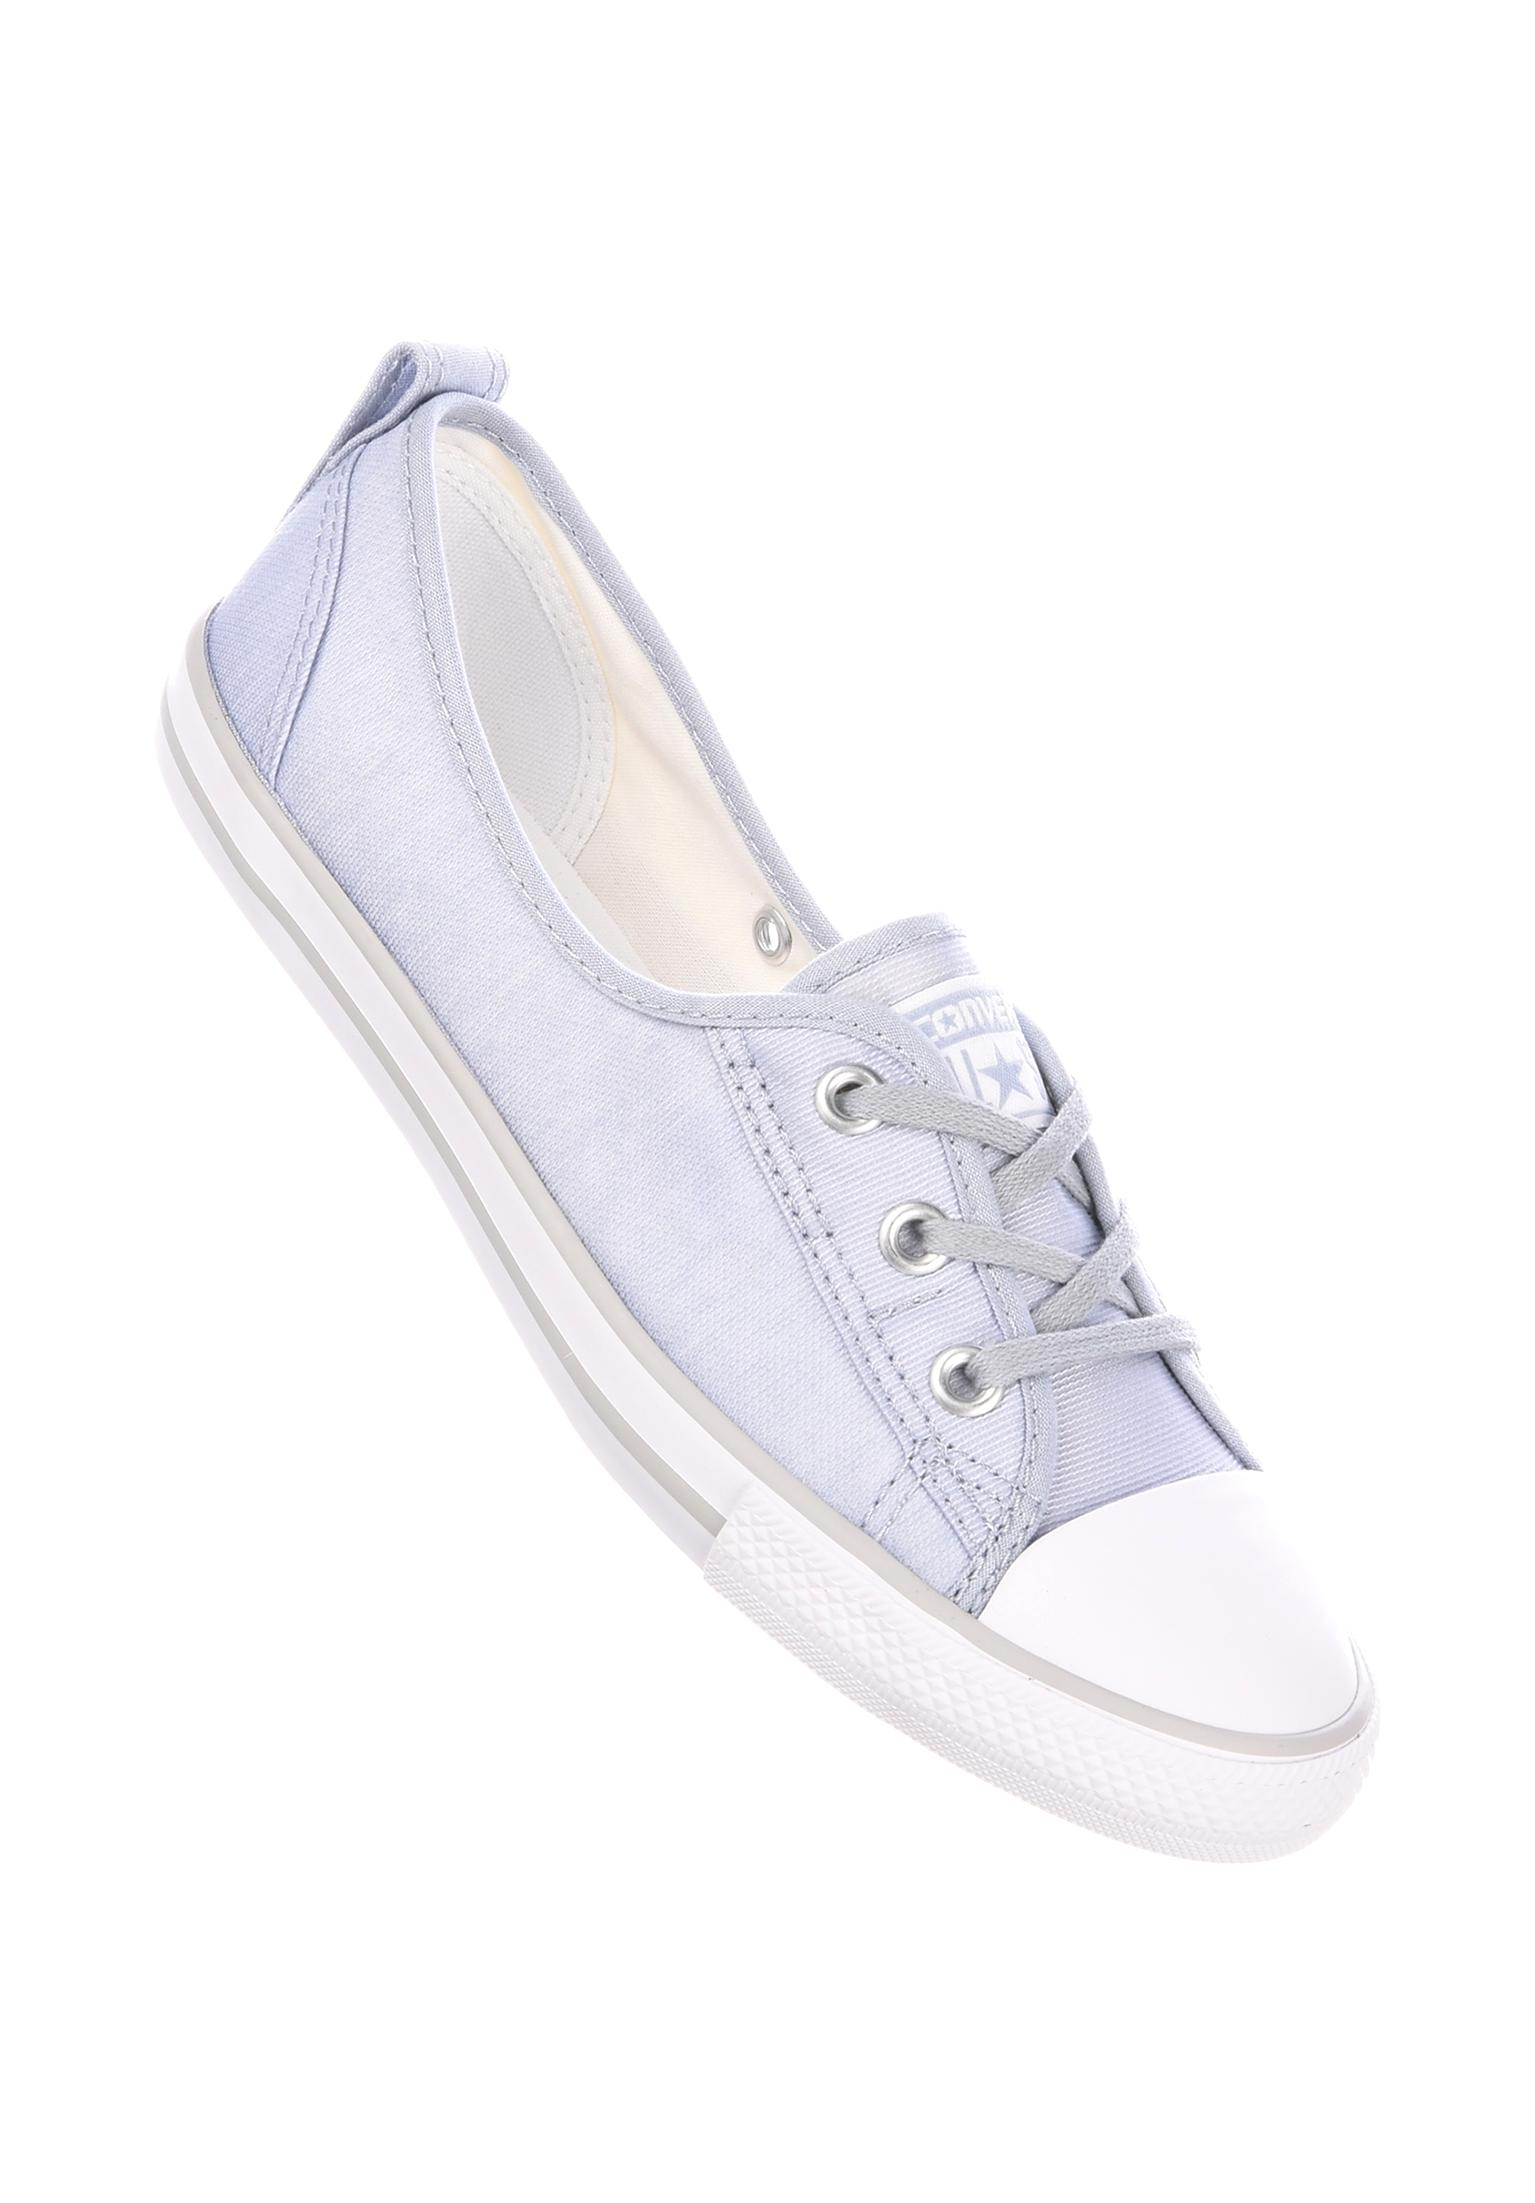 Ballet Lace Converse All Shoes in blue-white-mouse for Women  9299a2ec7